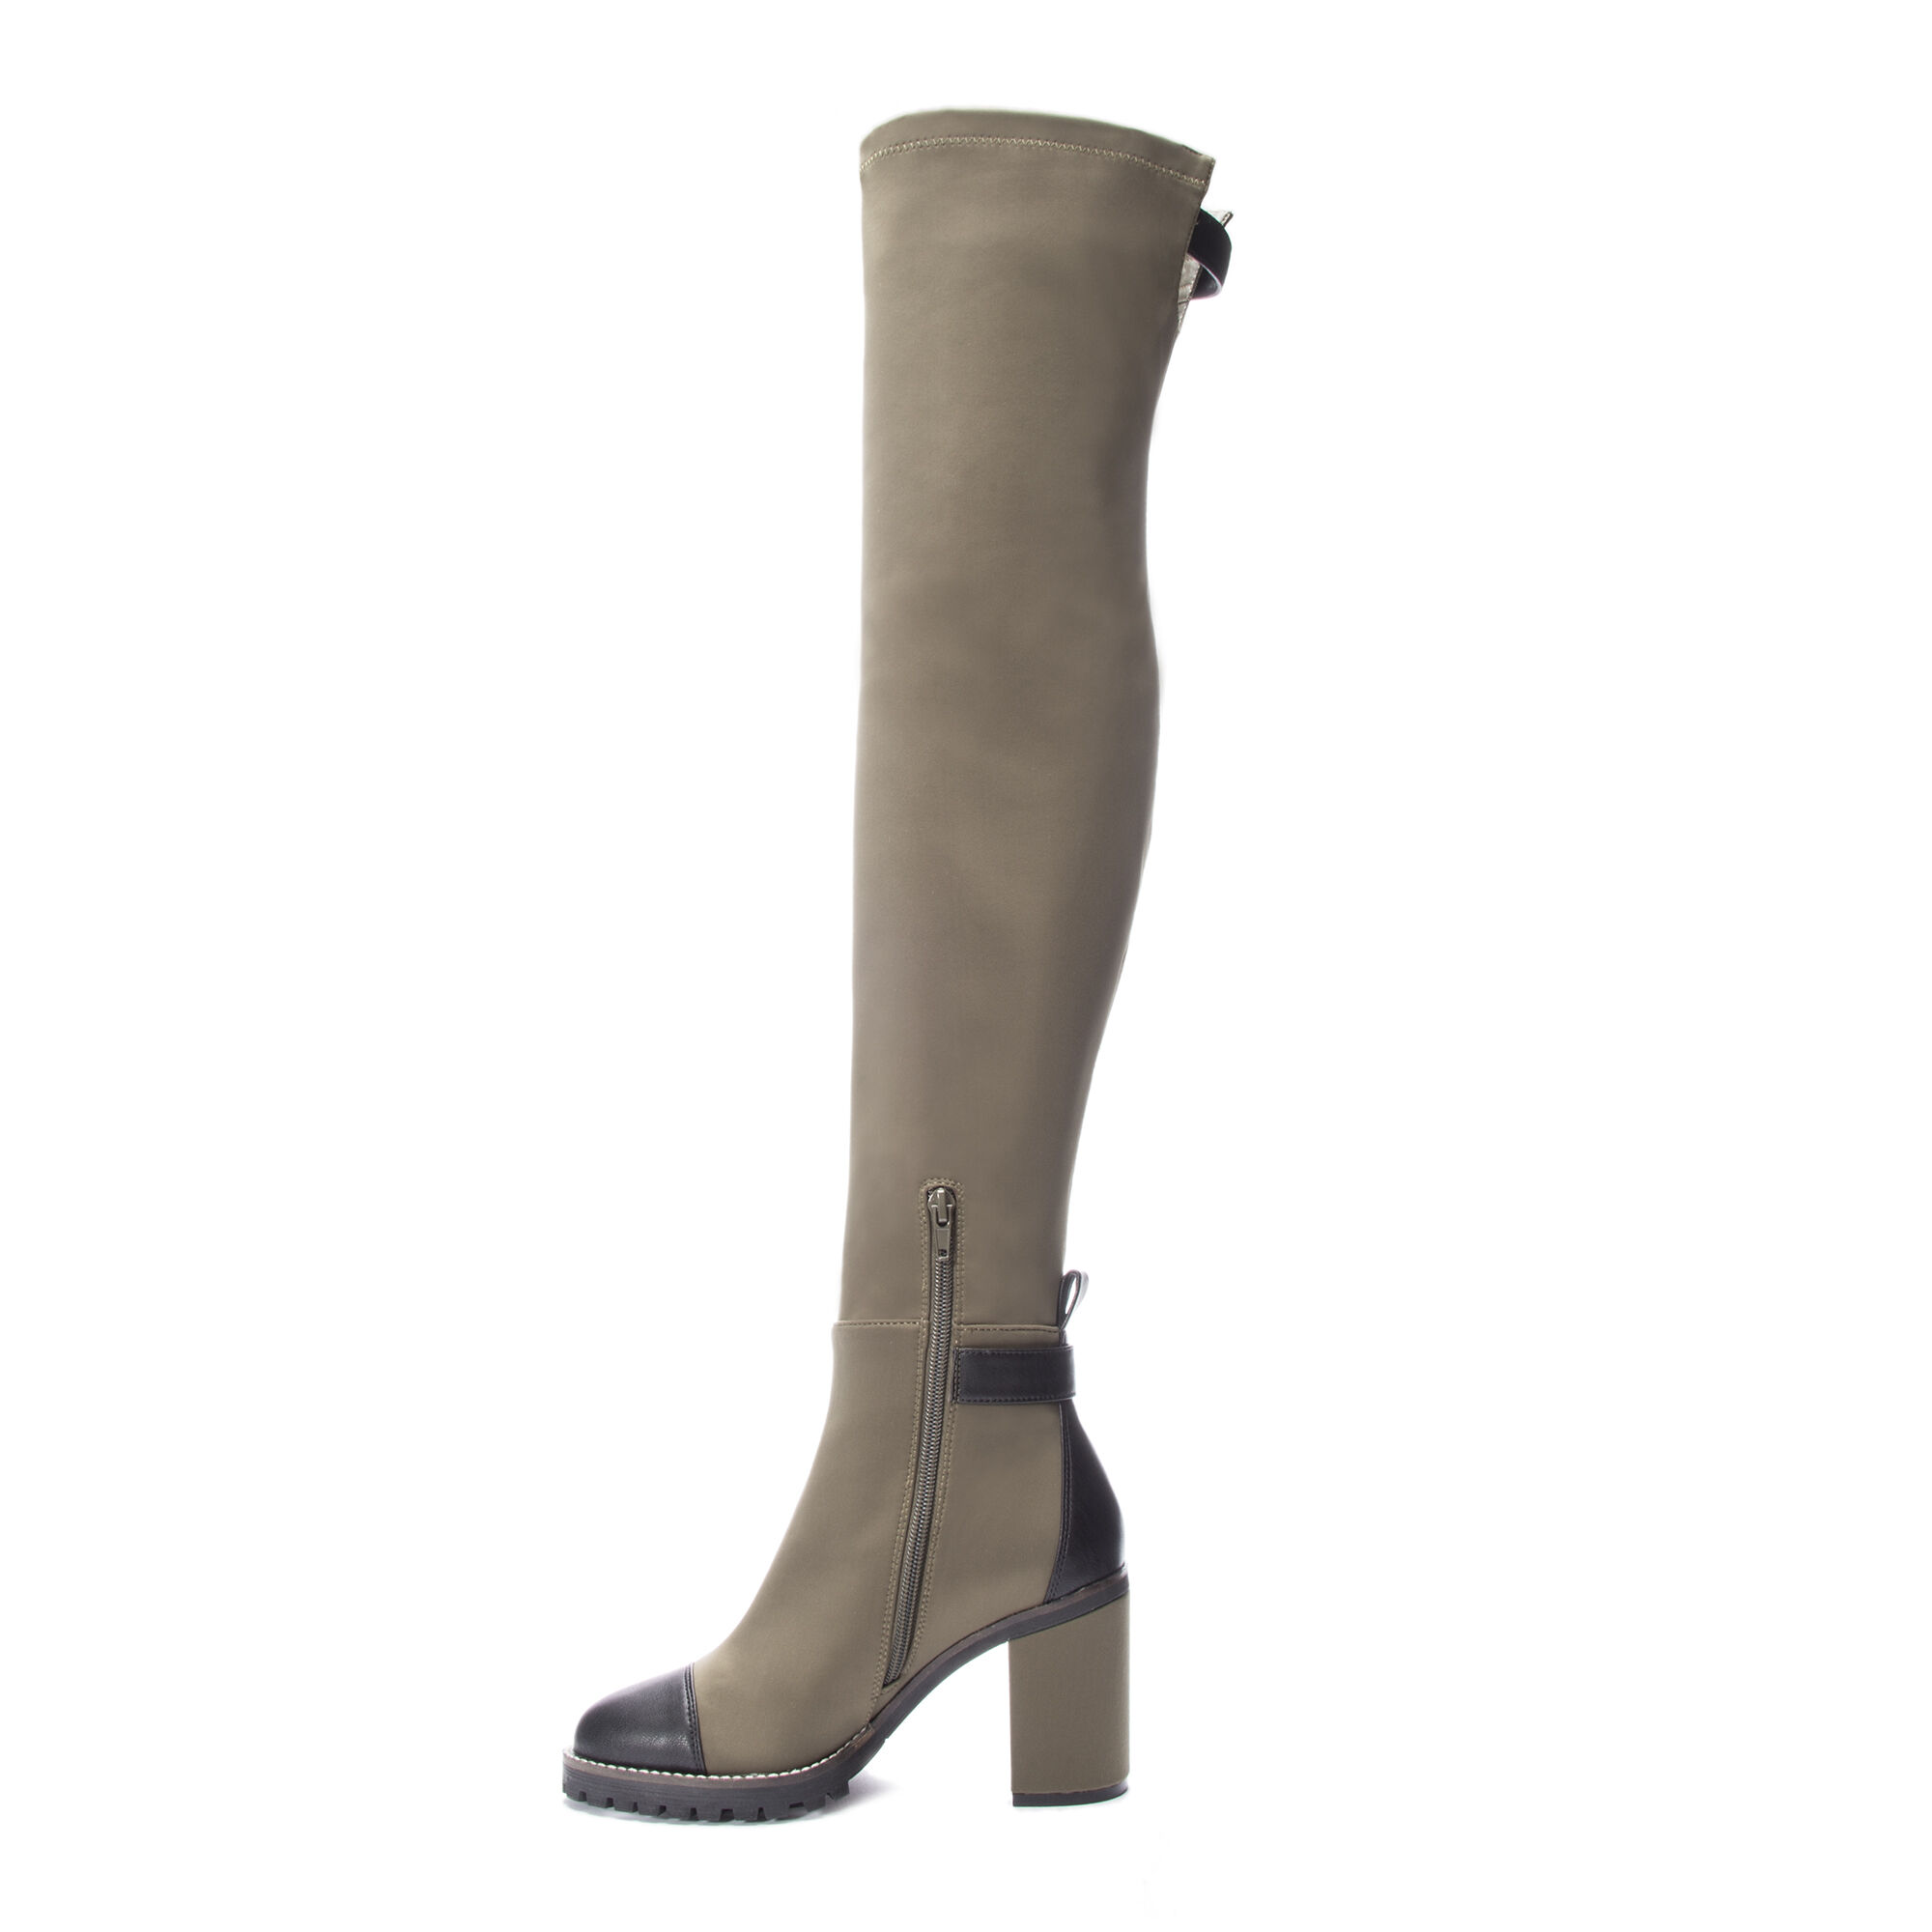 6f199855f86 Jerry Over the Knee Lug Sole Boot Heels